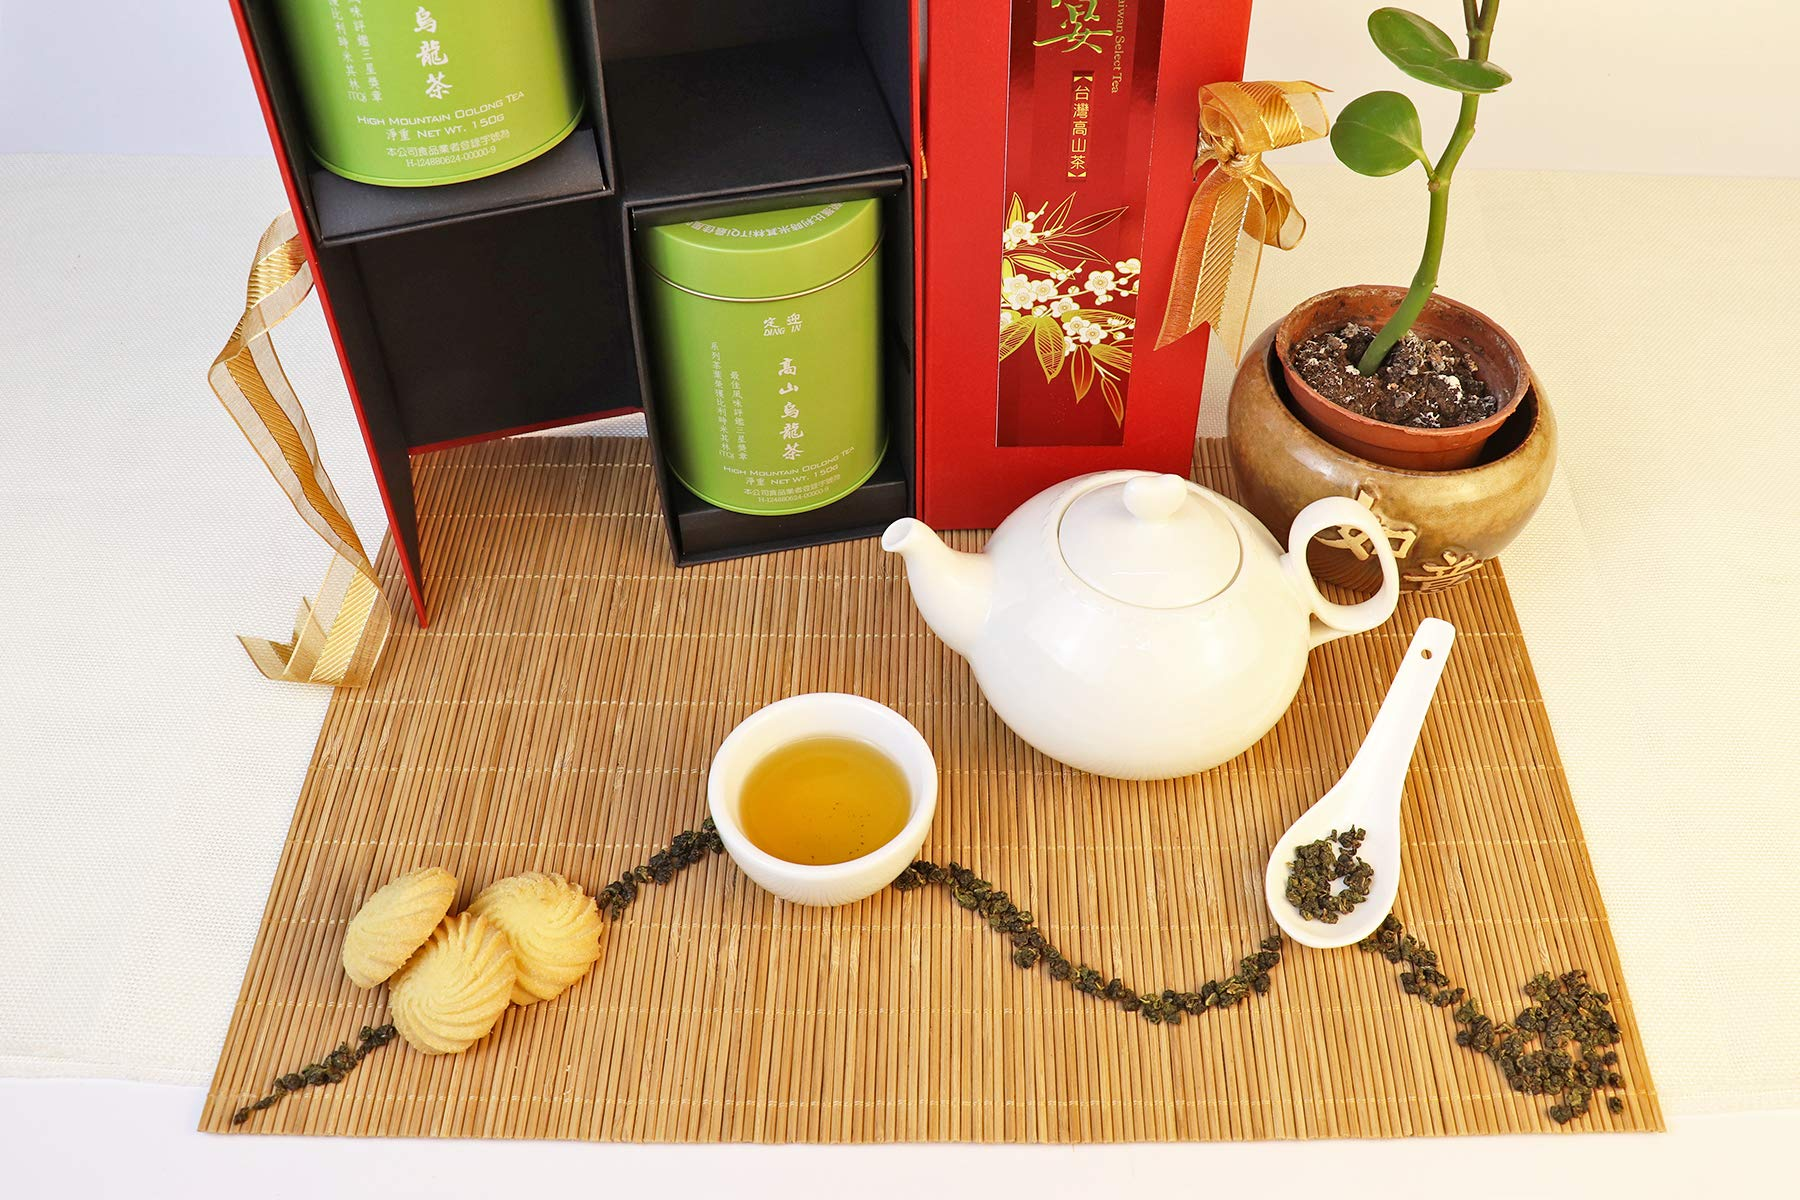 DING IN High-mountain Oolong Tea Feast Straight Gift Box 150g/2cans by Ding In ltd. (Image #3)